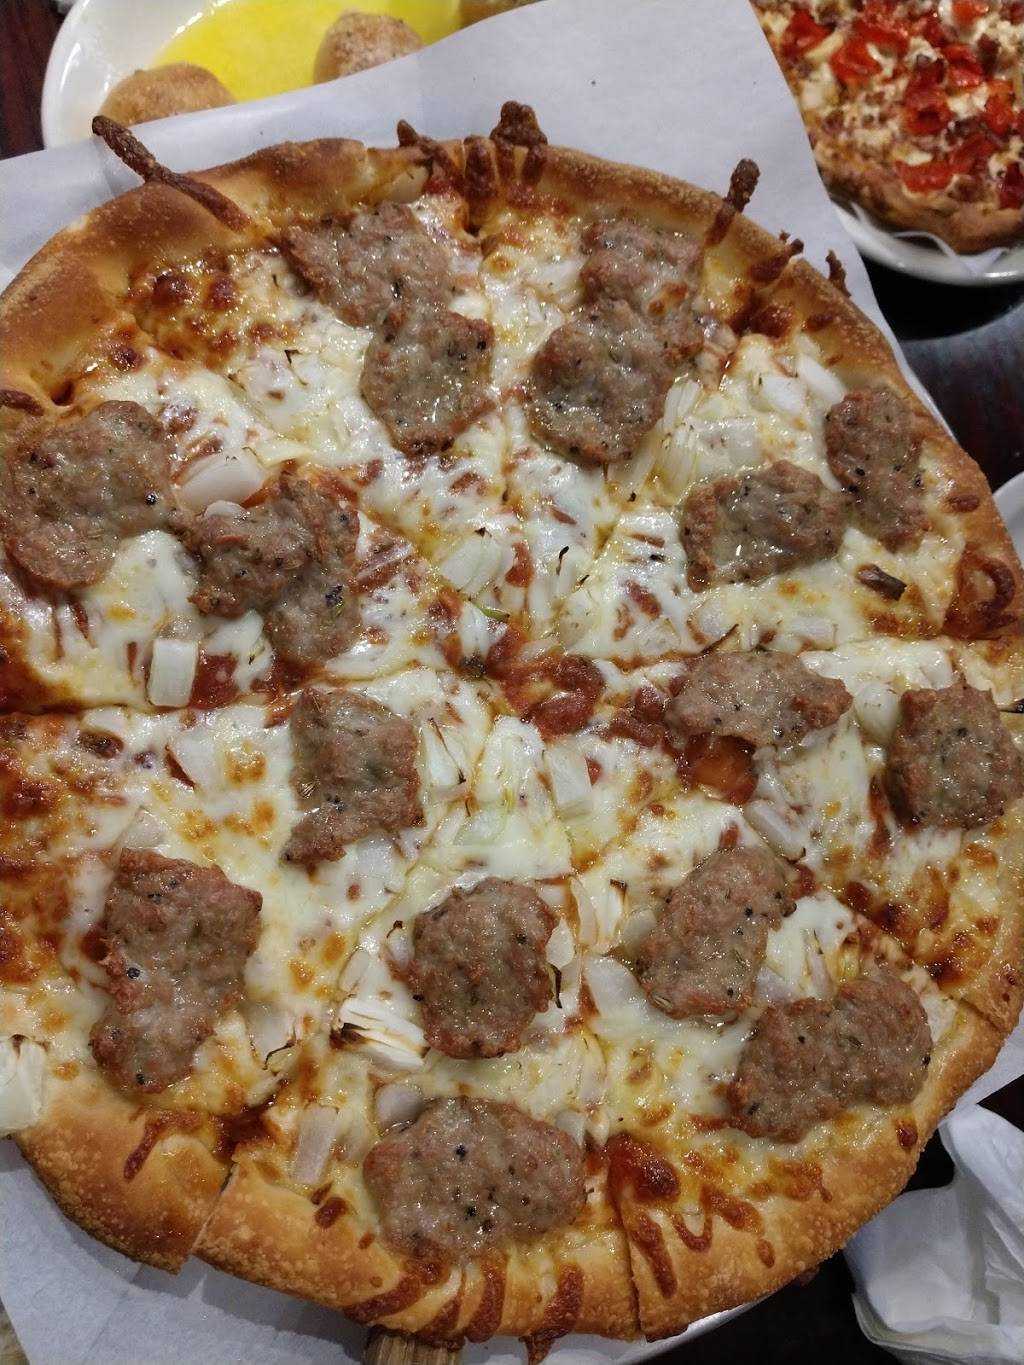 Master Pizza | meal delivery | 13311 Pearl Rd, Strongsville, OH 44136, USA | 4408768777 OR +1 440-876-8777